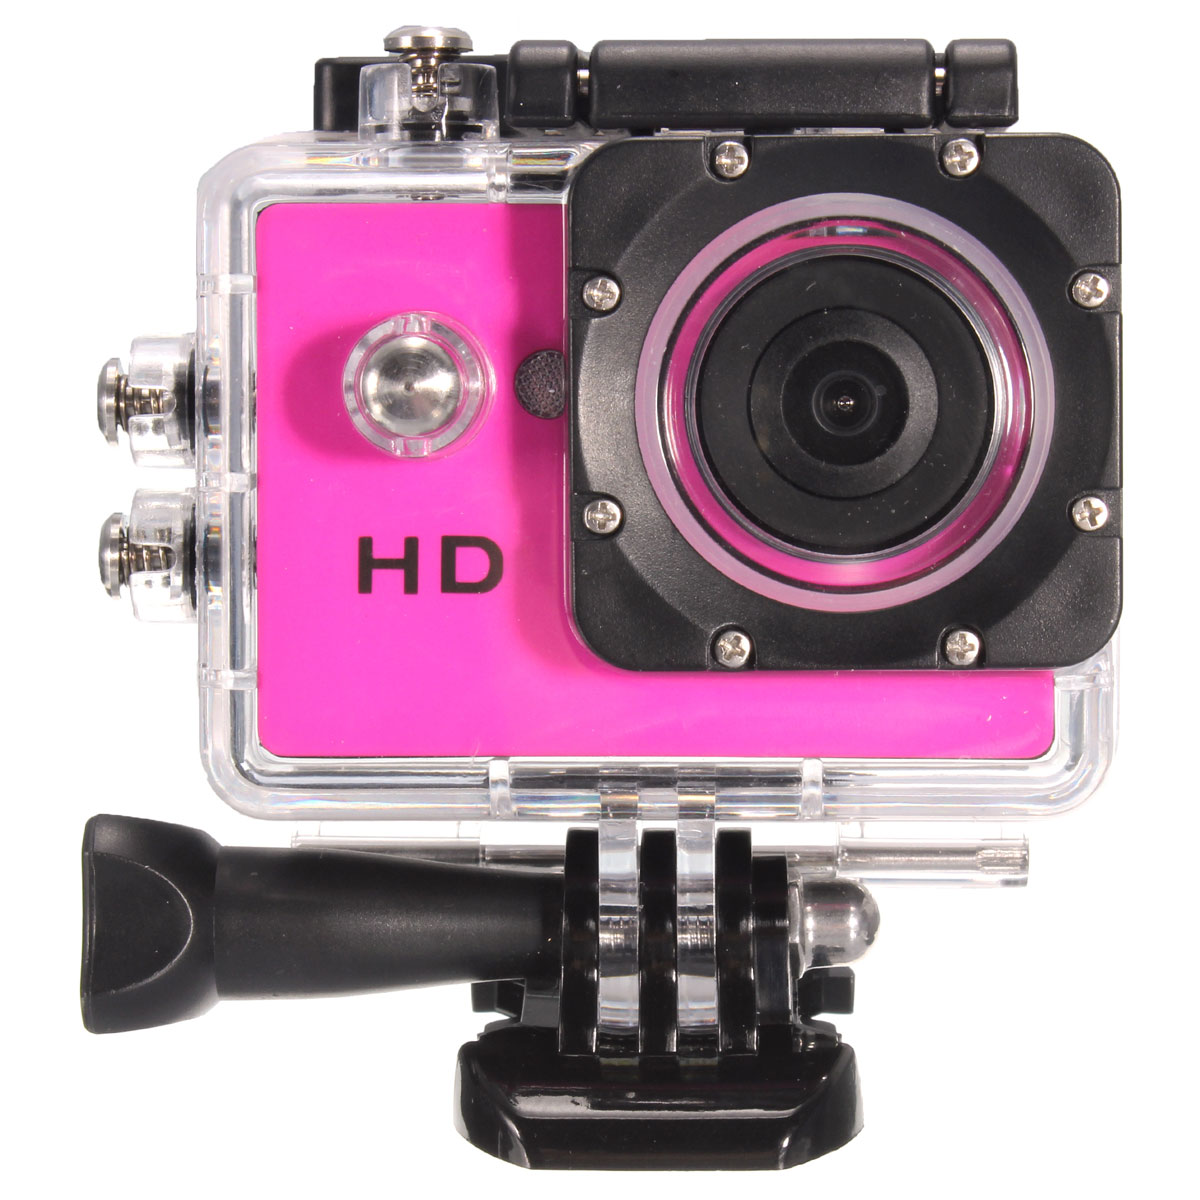 sj4000 720p mini dv video waterproof sports action camera camcorder dvr cam pink lazada malaysia. Black Bedroom Furniture Sets. Home Design Ideas